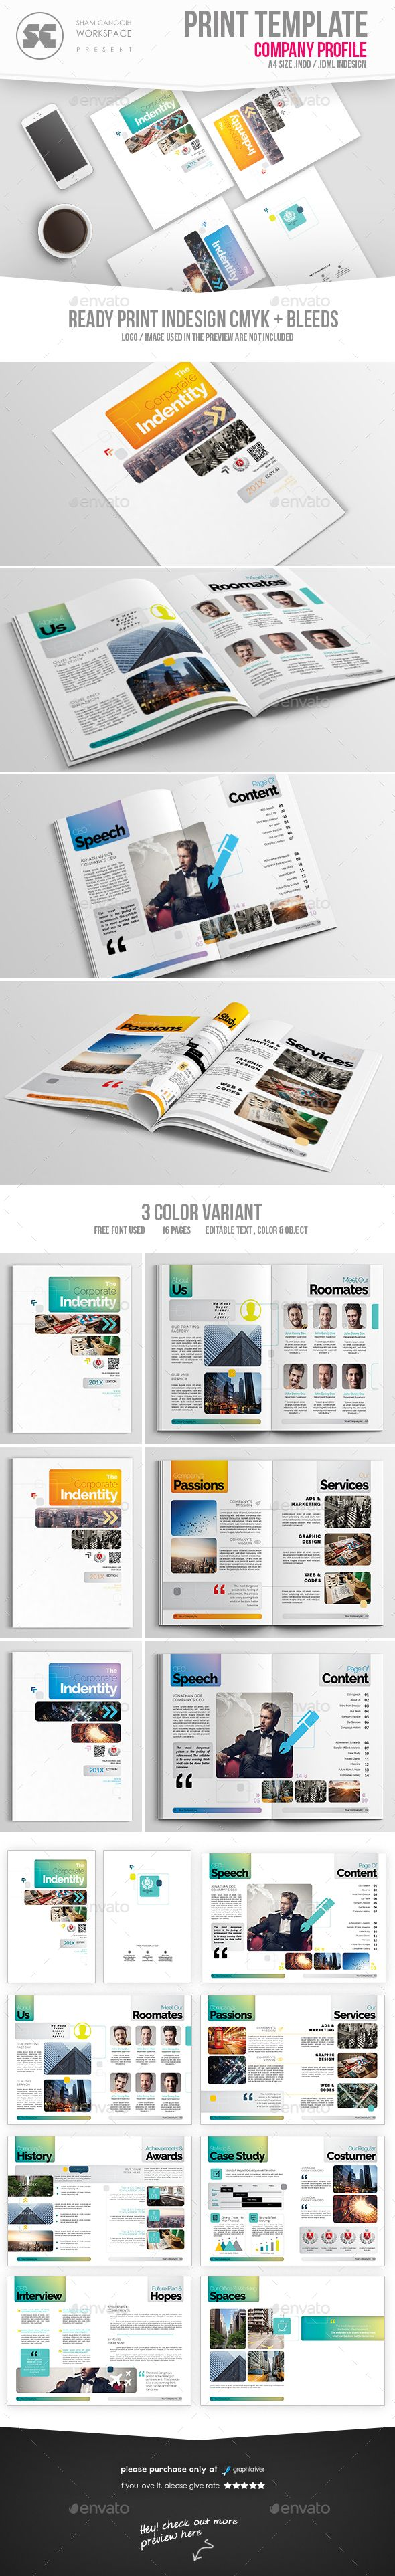 243 best Company Profile Templates images on Pinterest | Brochure ...